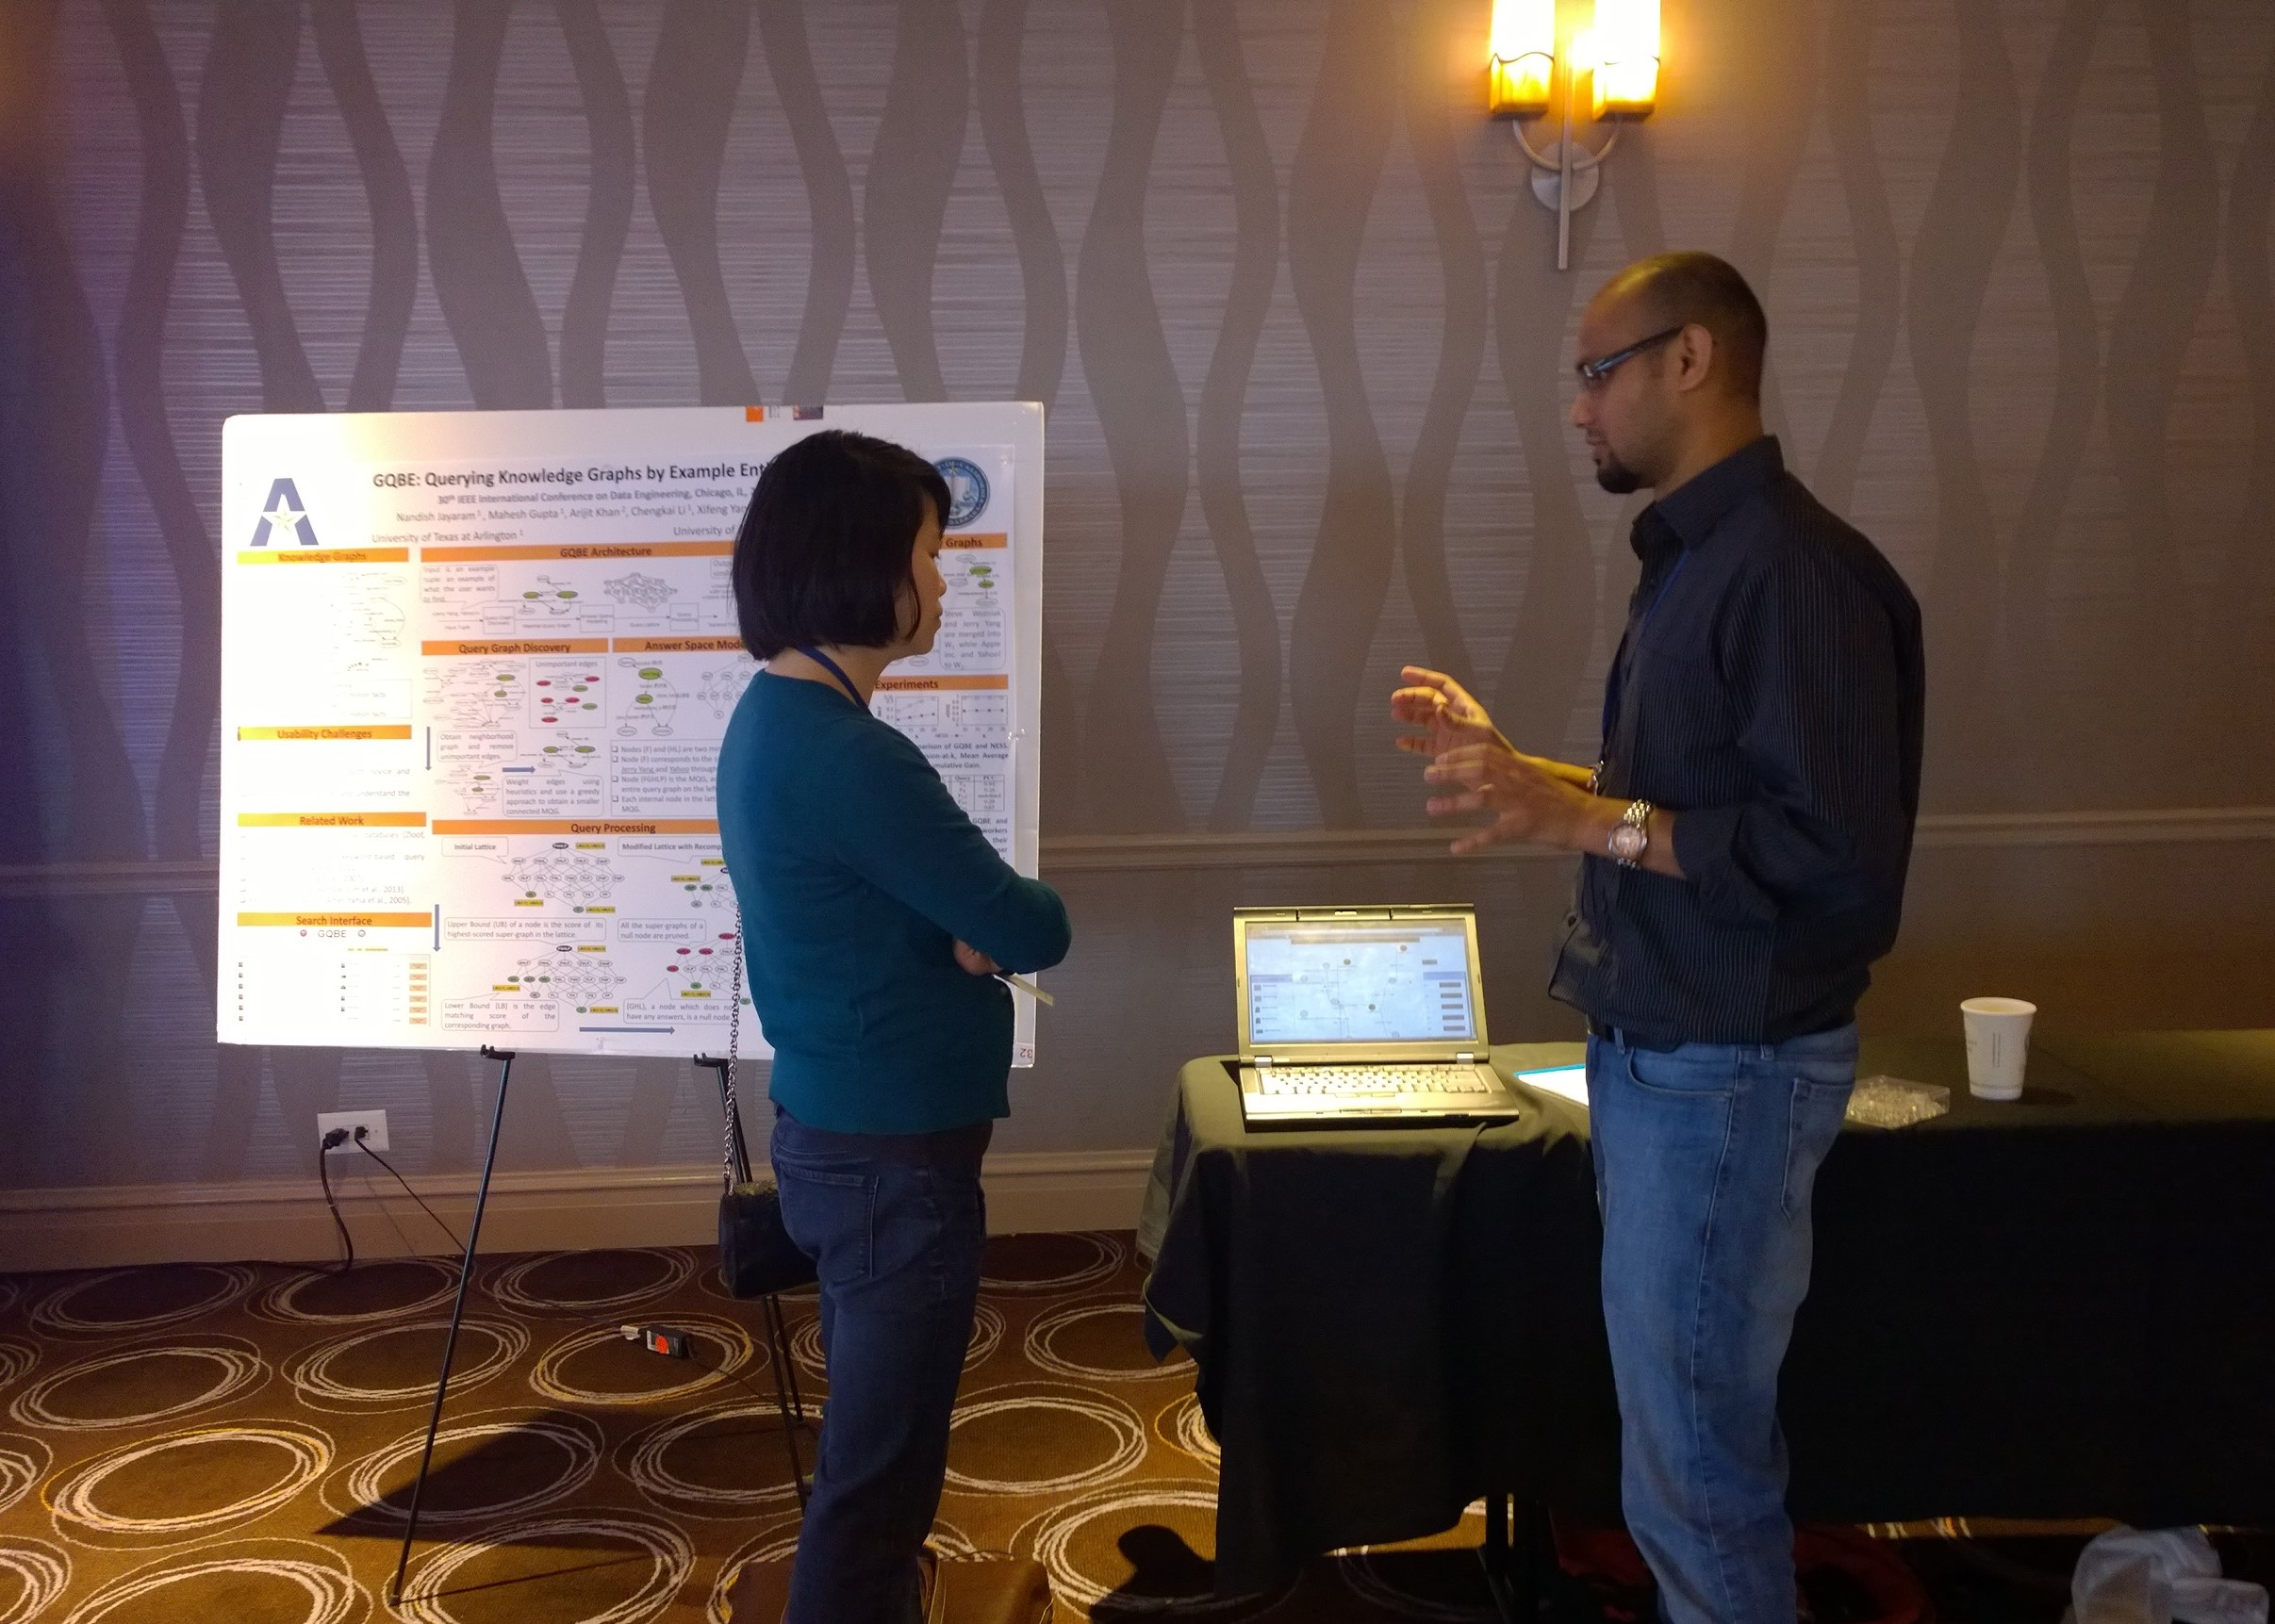 Nandish explaining GQBE demo at ICDE14 (Apr. 2014)